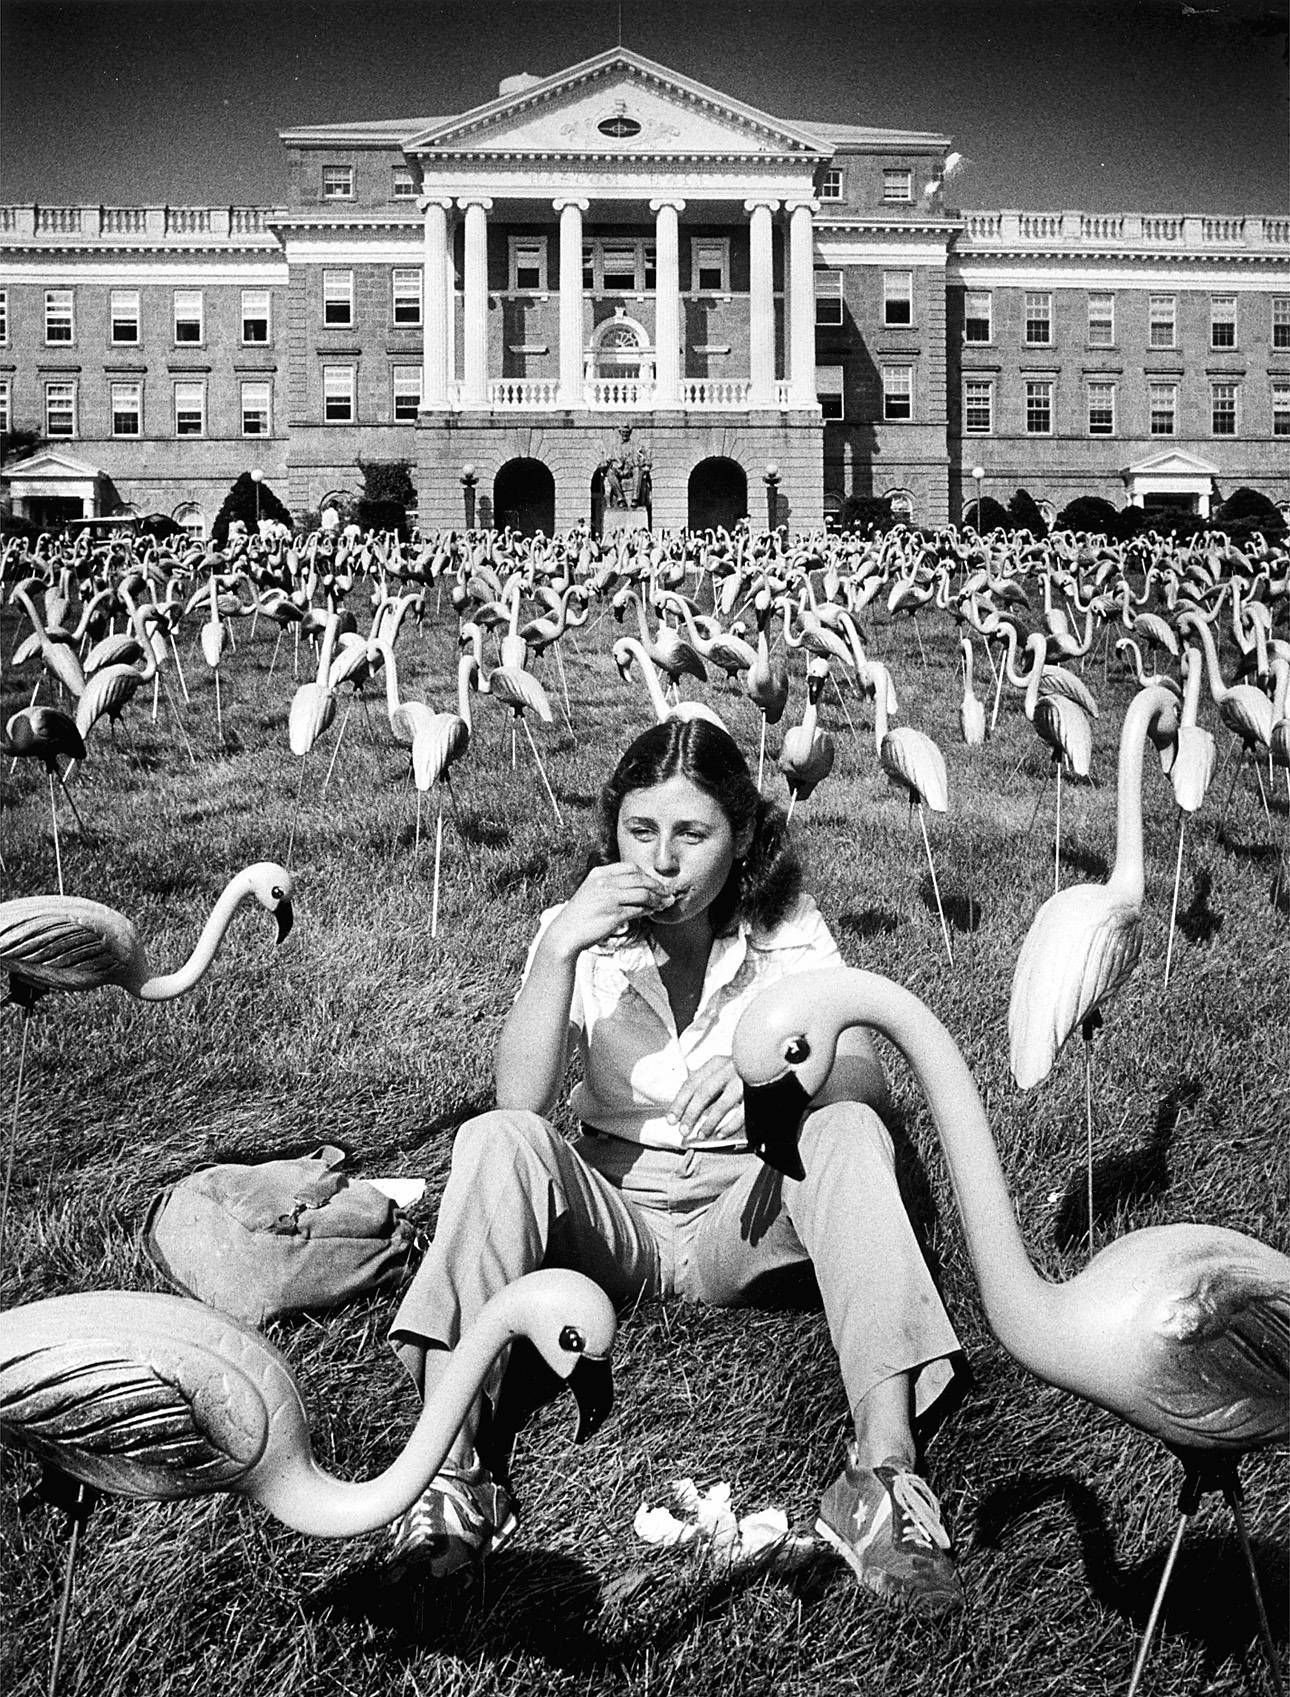 University of Wisconsin-Madison student Joan O'Donnell takes a snack break on Bascom Hill amid a flock of pink plastic flamingos put up as a prank by the Pail and Shovel Party of the Wisconsin Student Association in Madison, Wis.